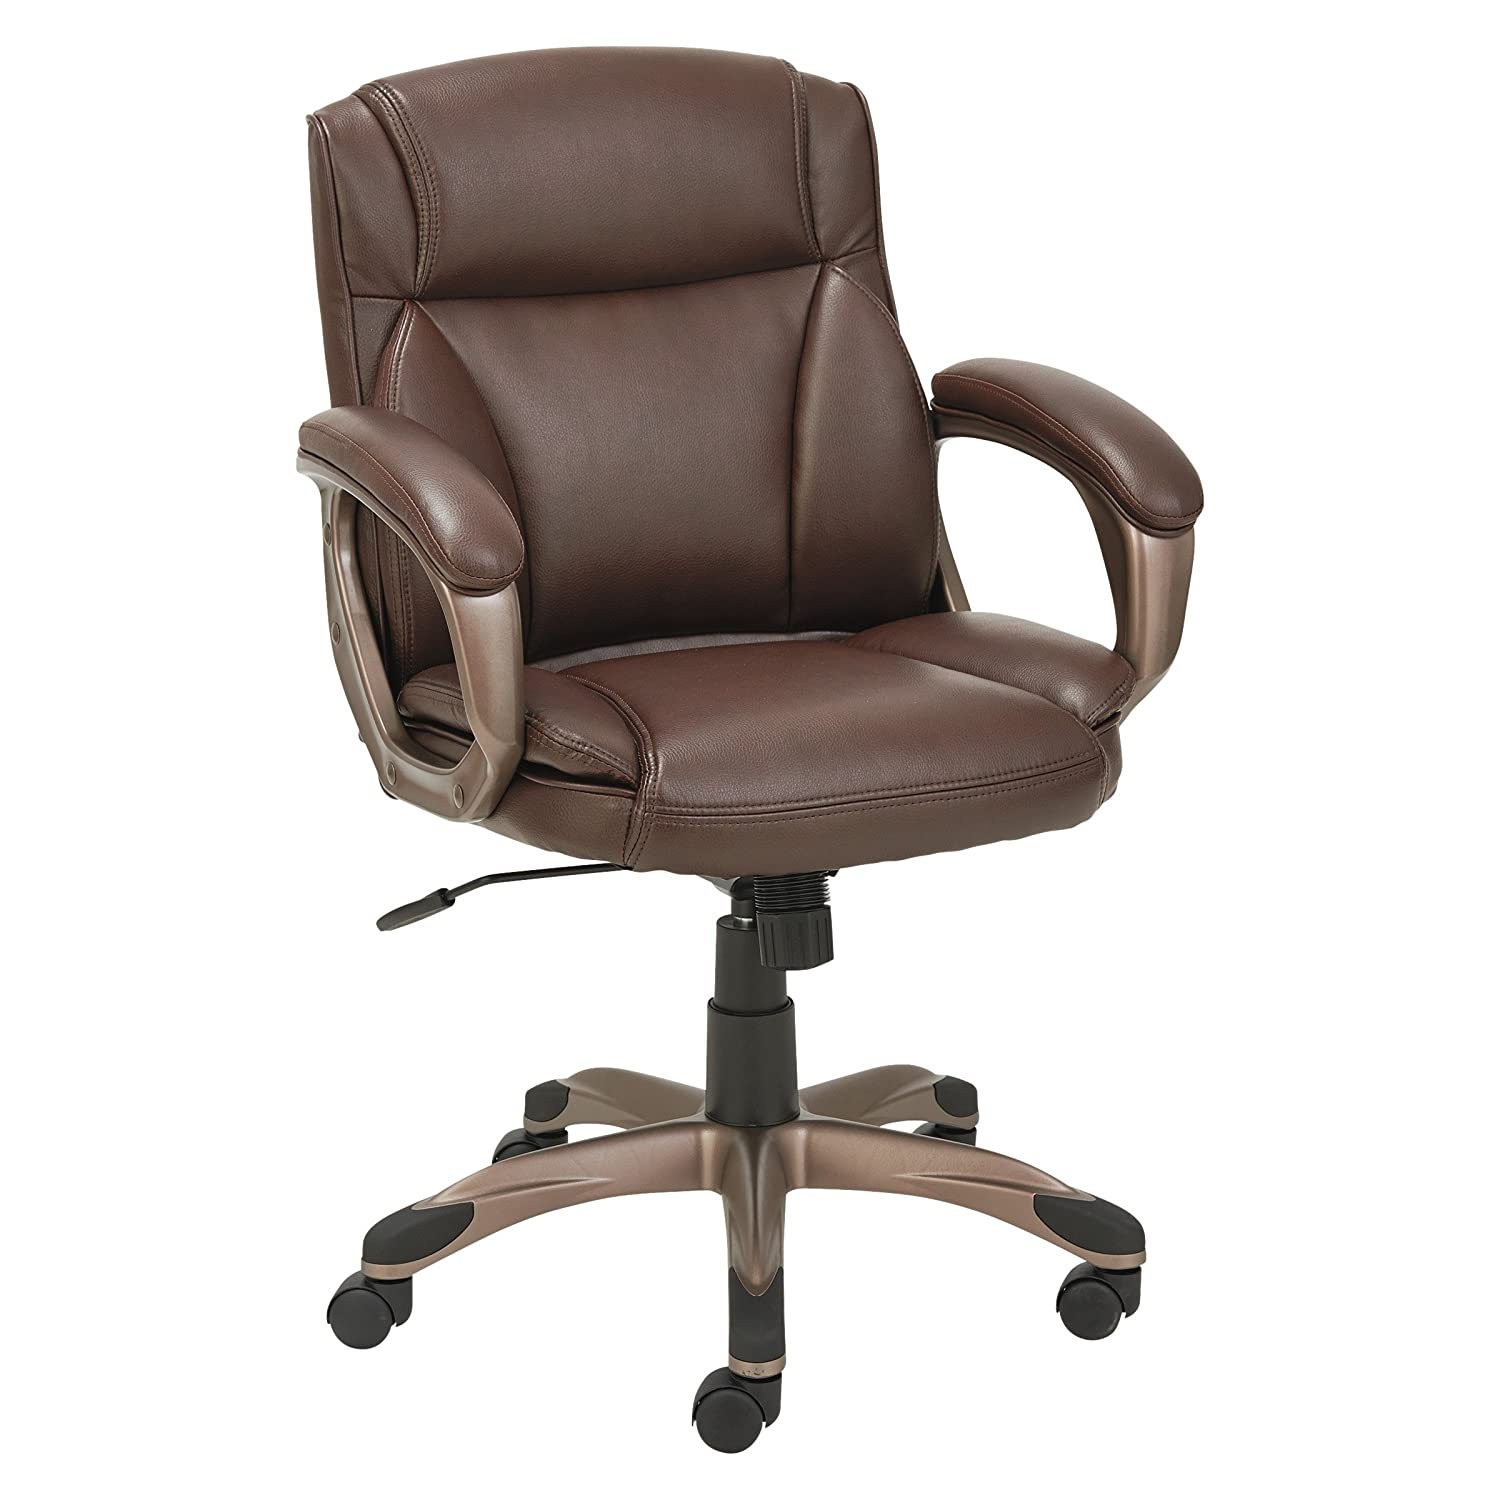 Alera ALEVN6159 Veon Series Low-Back Leather Task Chair w/Coil Spring Cushion, Brown